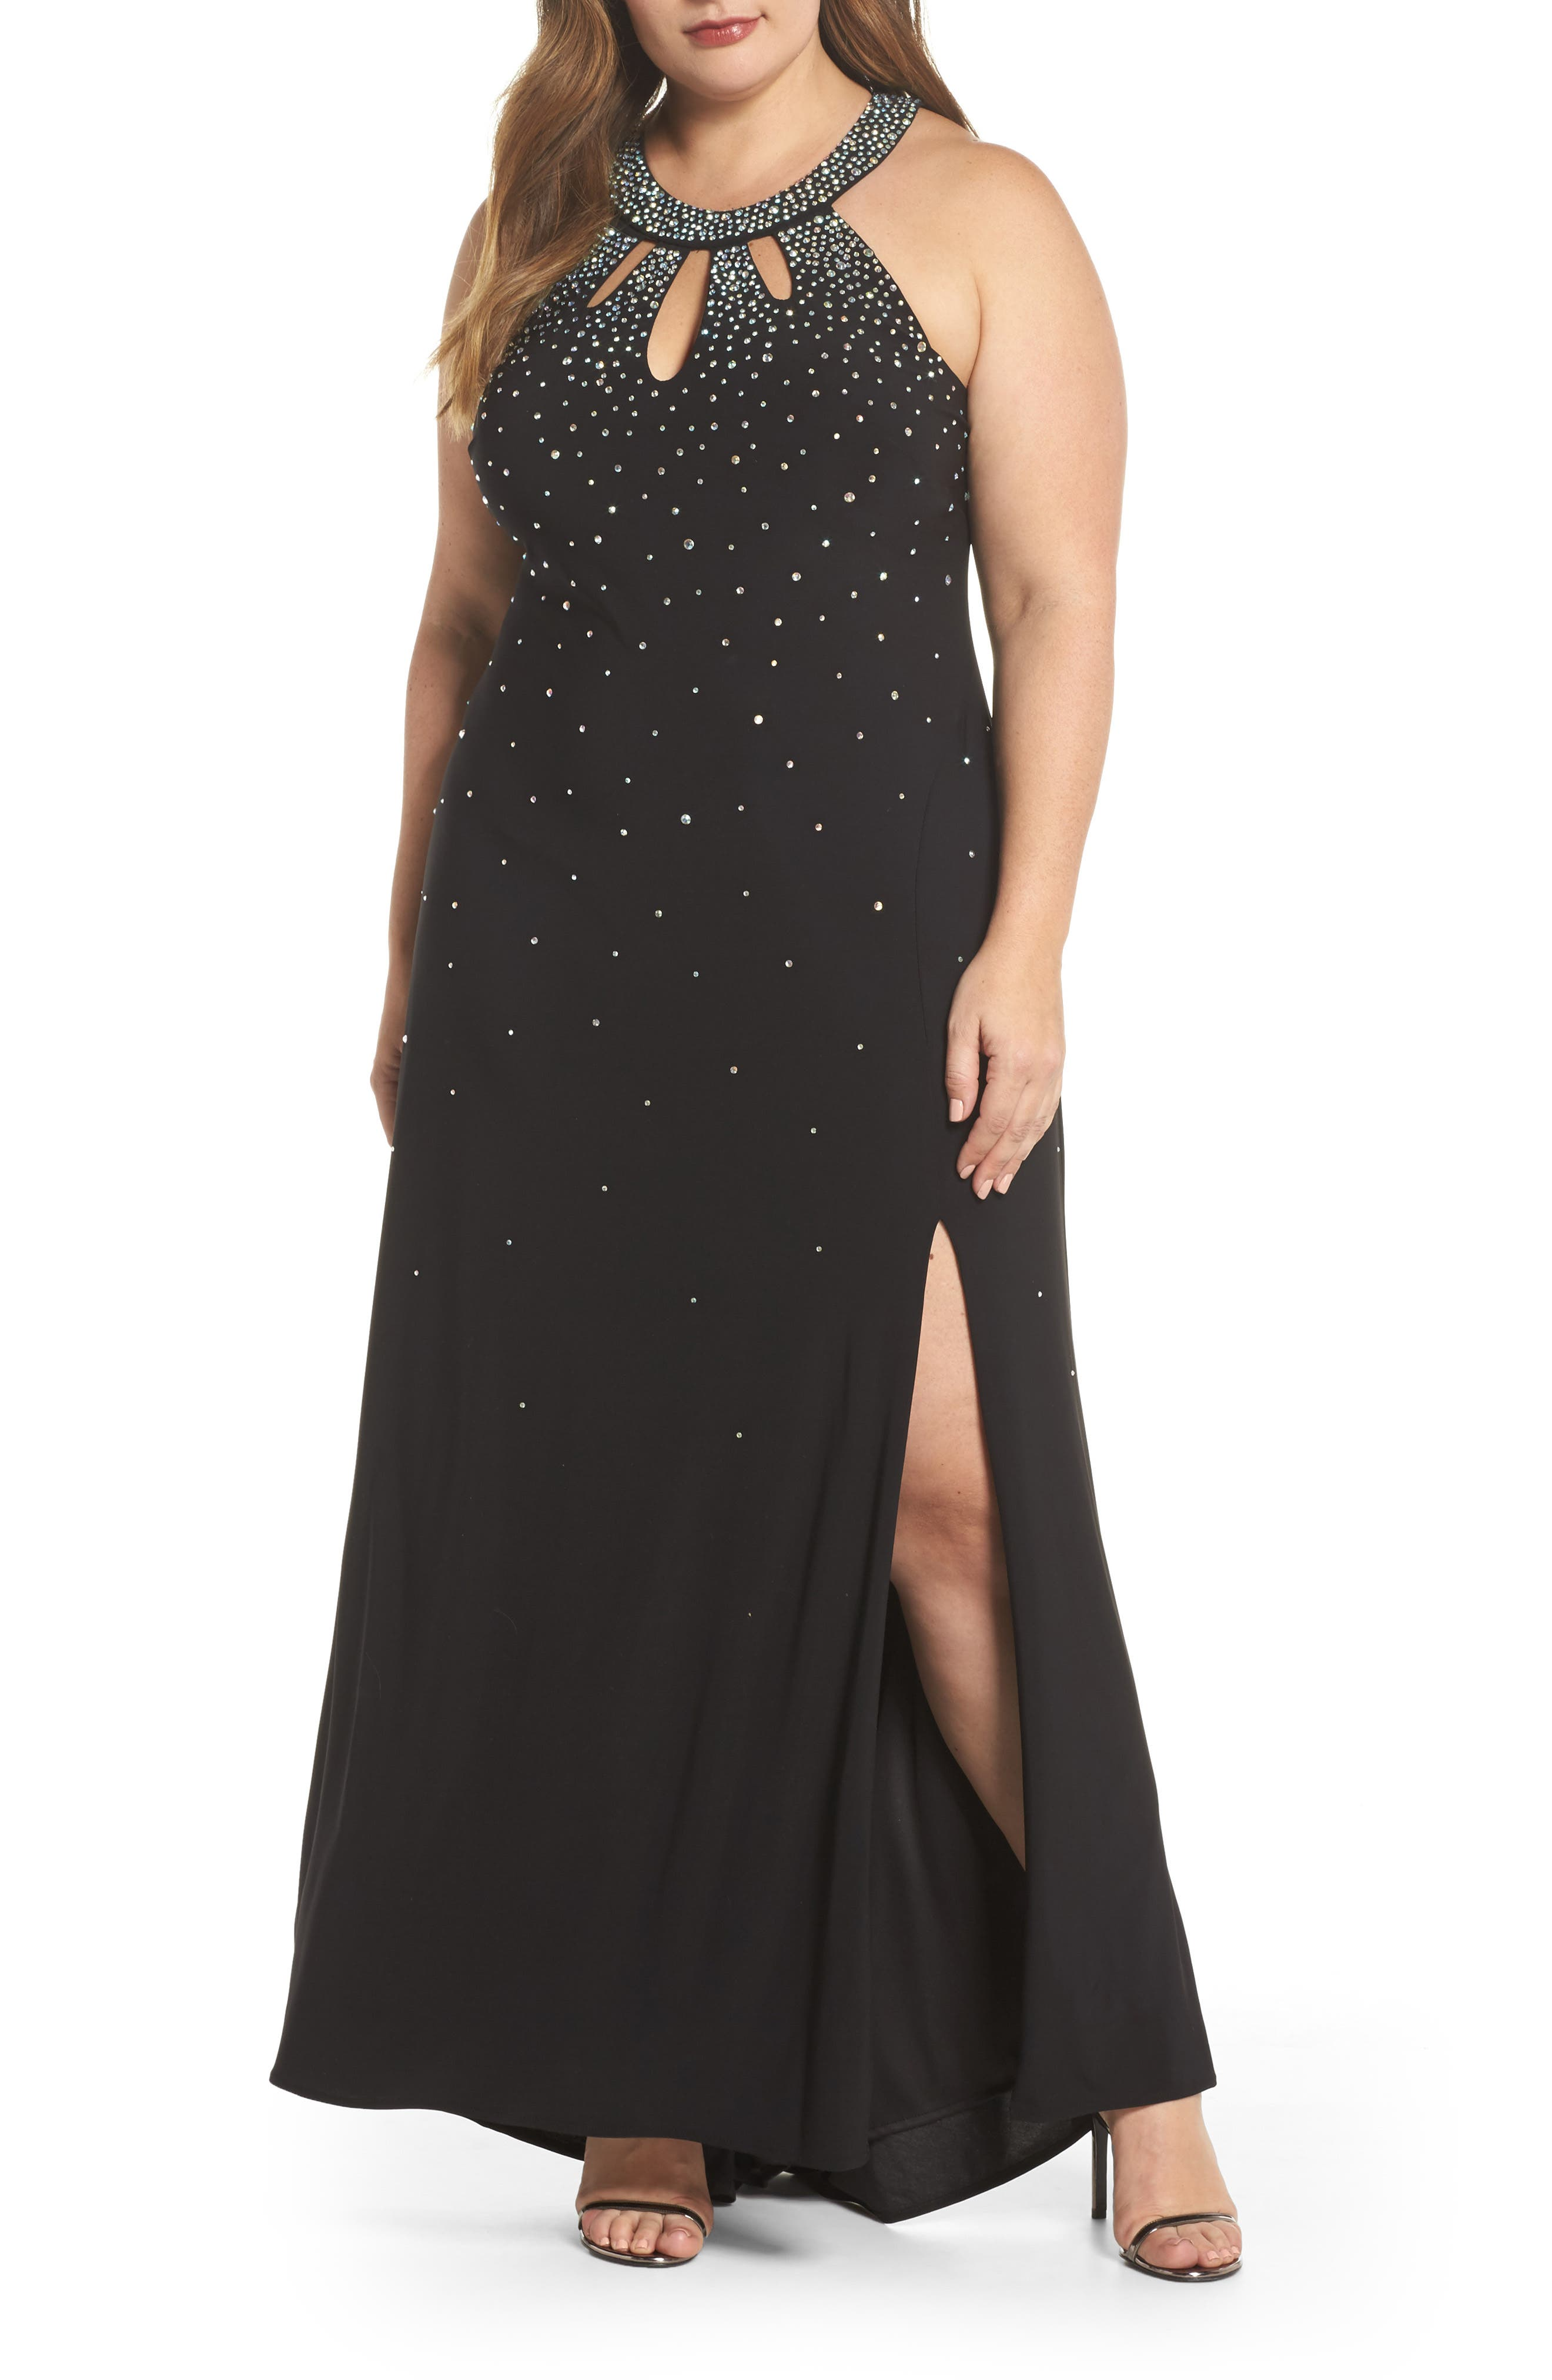 Heat Sealed Stone Knit Gown,                         Main,                         color, BLACK